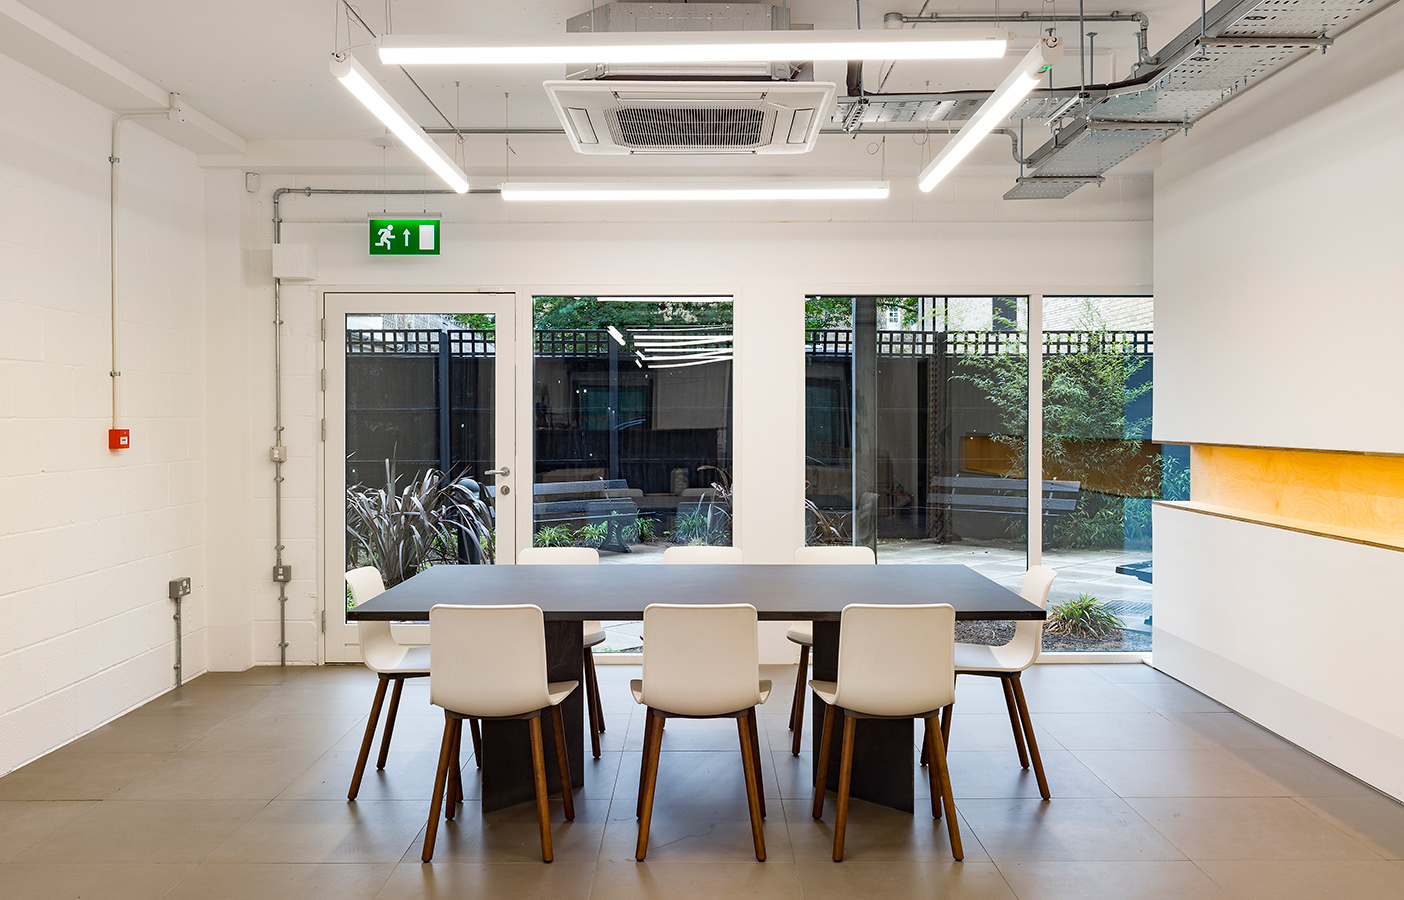 Aldworth James & Bond | Hackney Workspace meeting space designed by AJ&B Studio